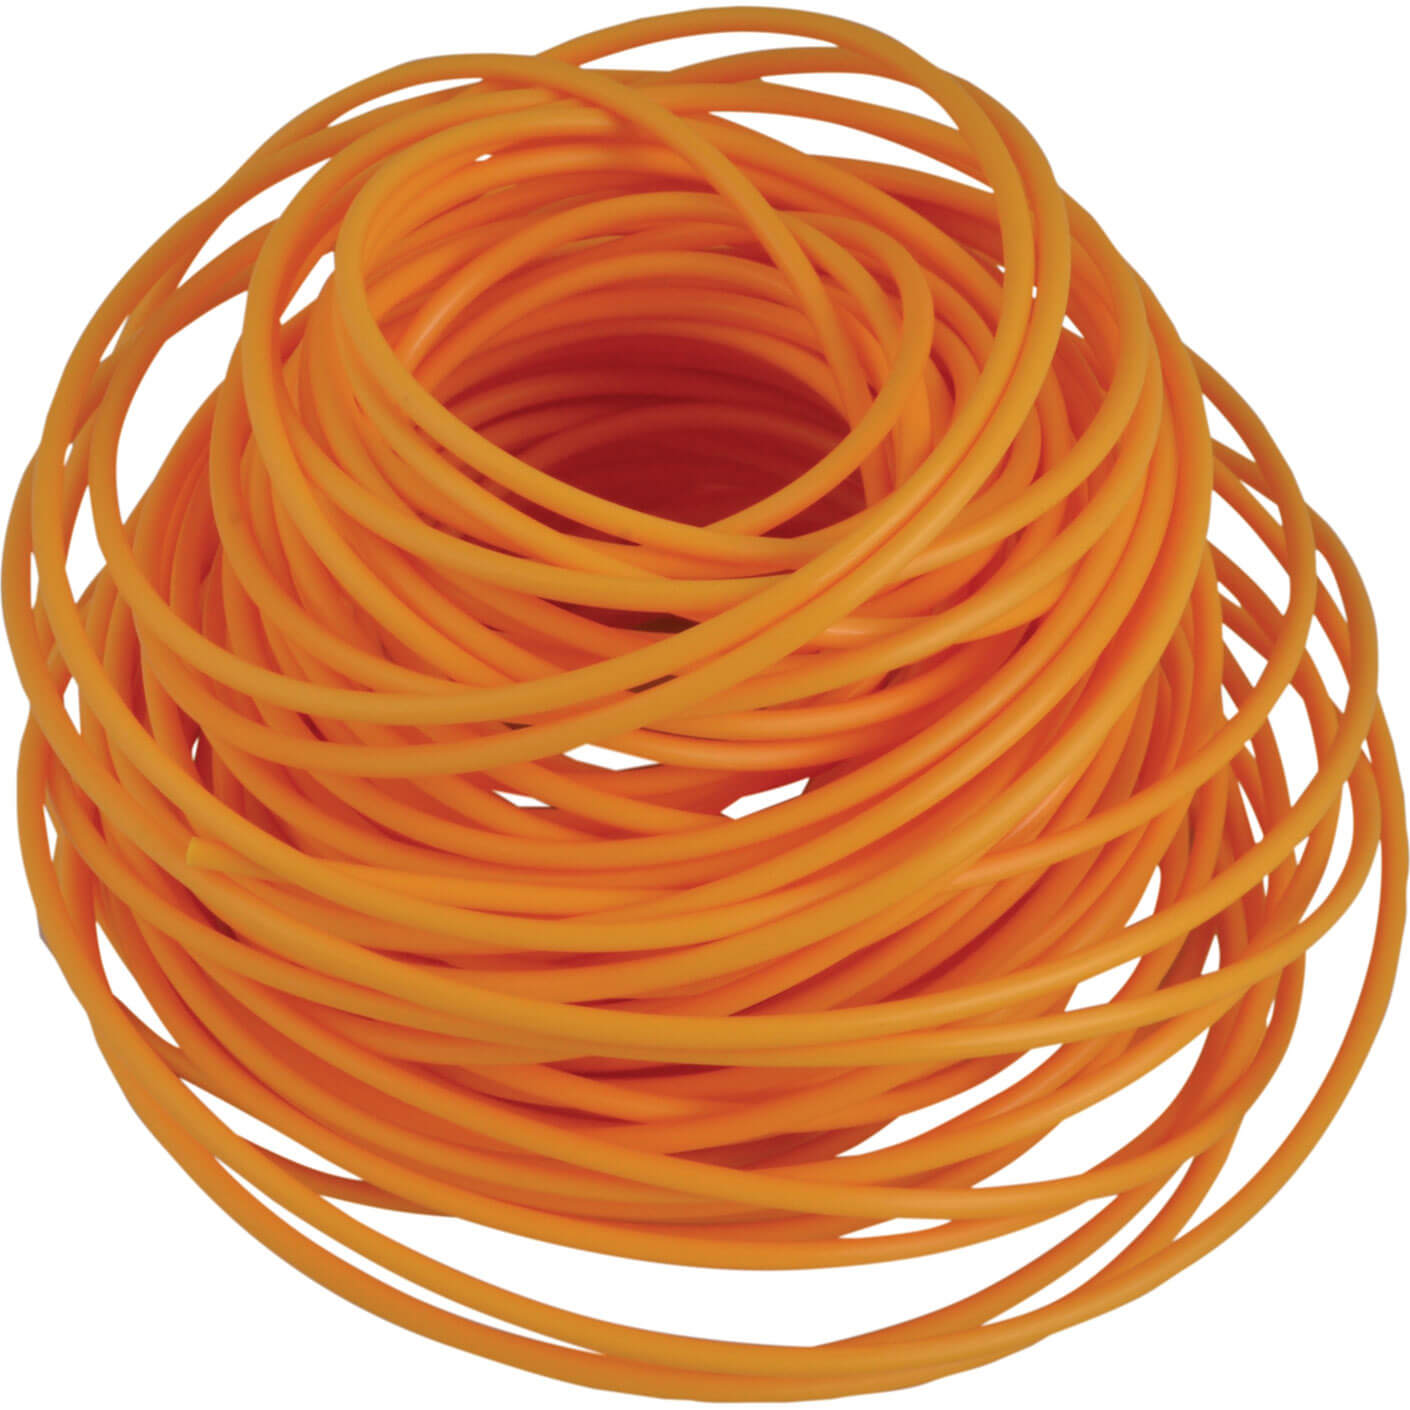 ALM SL004 2.4mm x 20m Orange Strimmer Spool Replacement Line Fits Most Trimmers